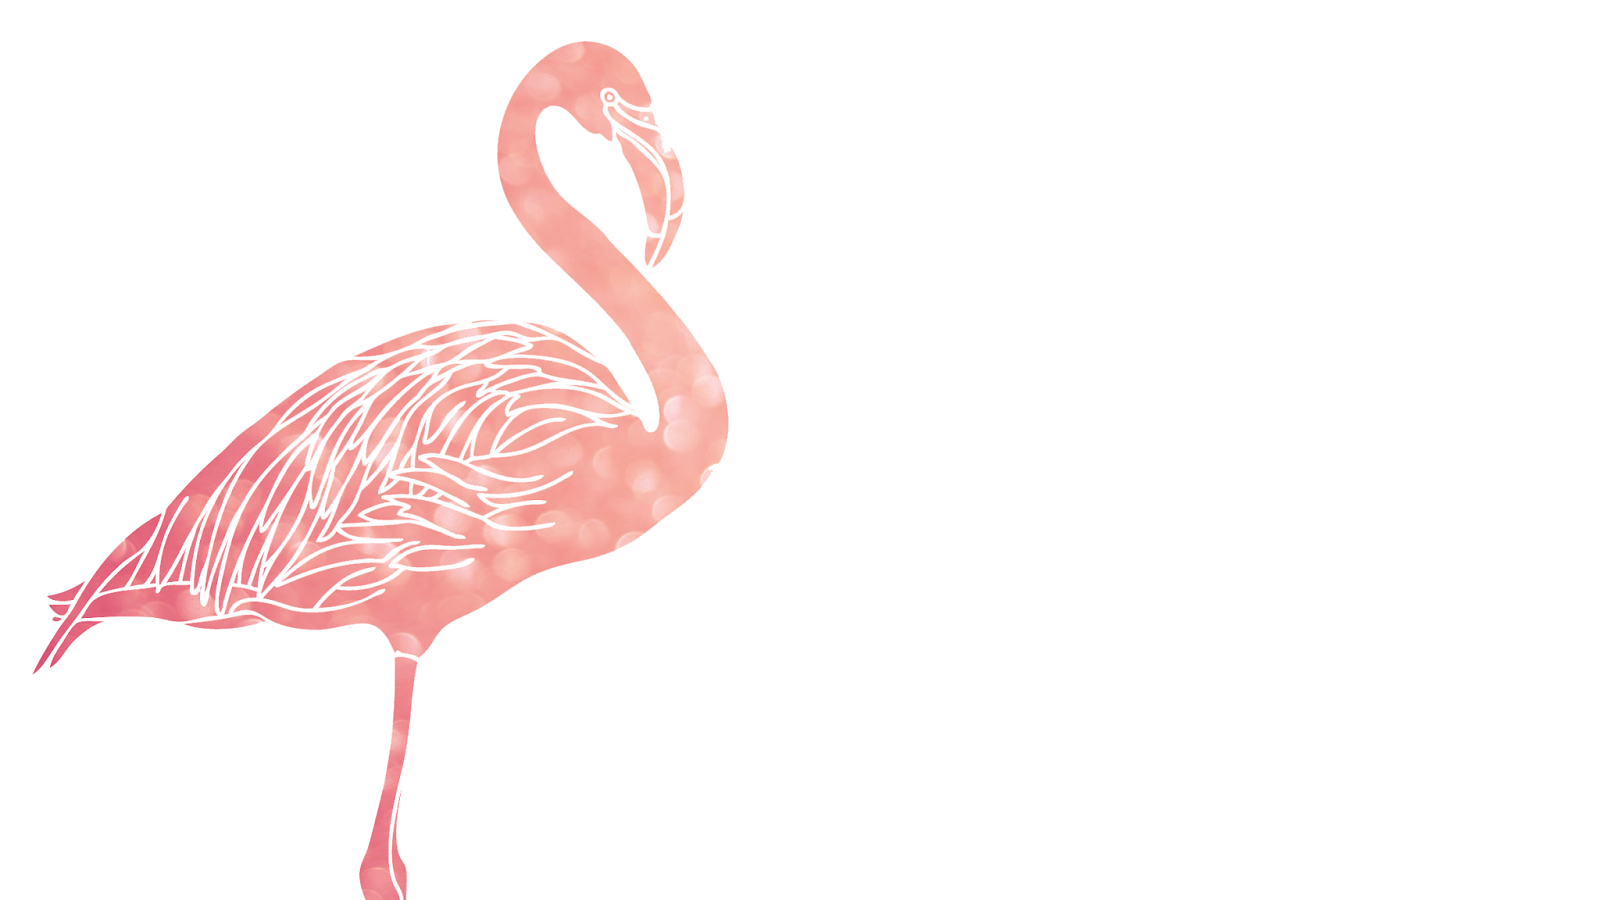 Cb D B A F B D moreover Flamingo Pic X F Ac likewise Moose Pic X F B moreover E D A Faad Bf also Ruffed Grouse Coloring Page. on bing coloring book